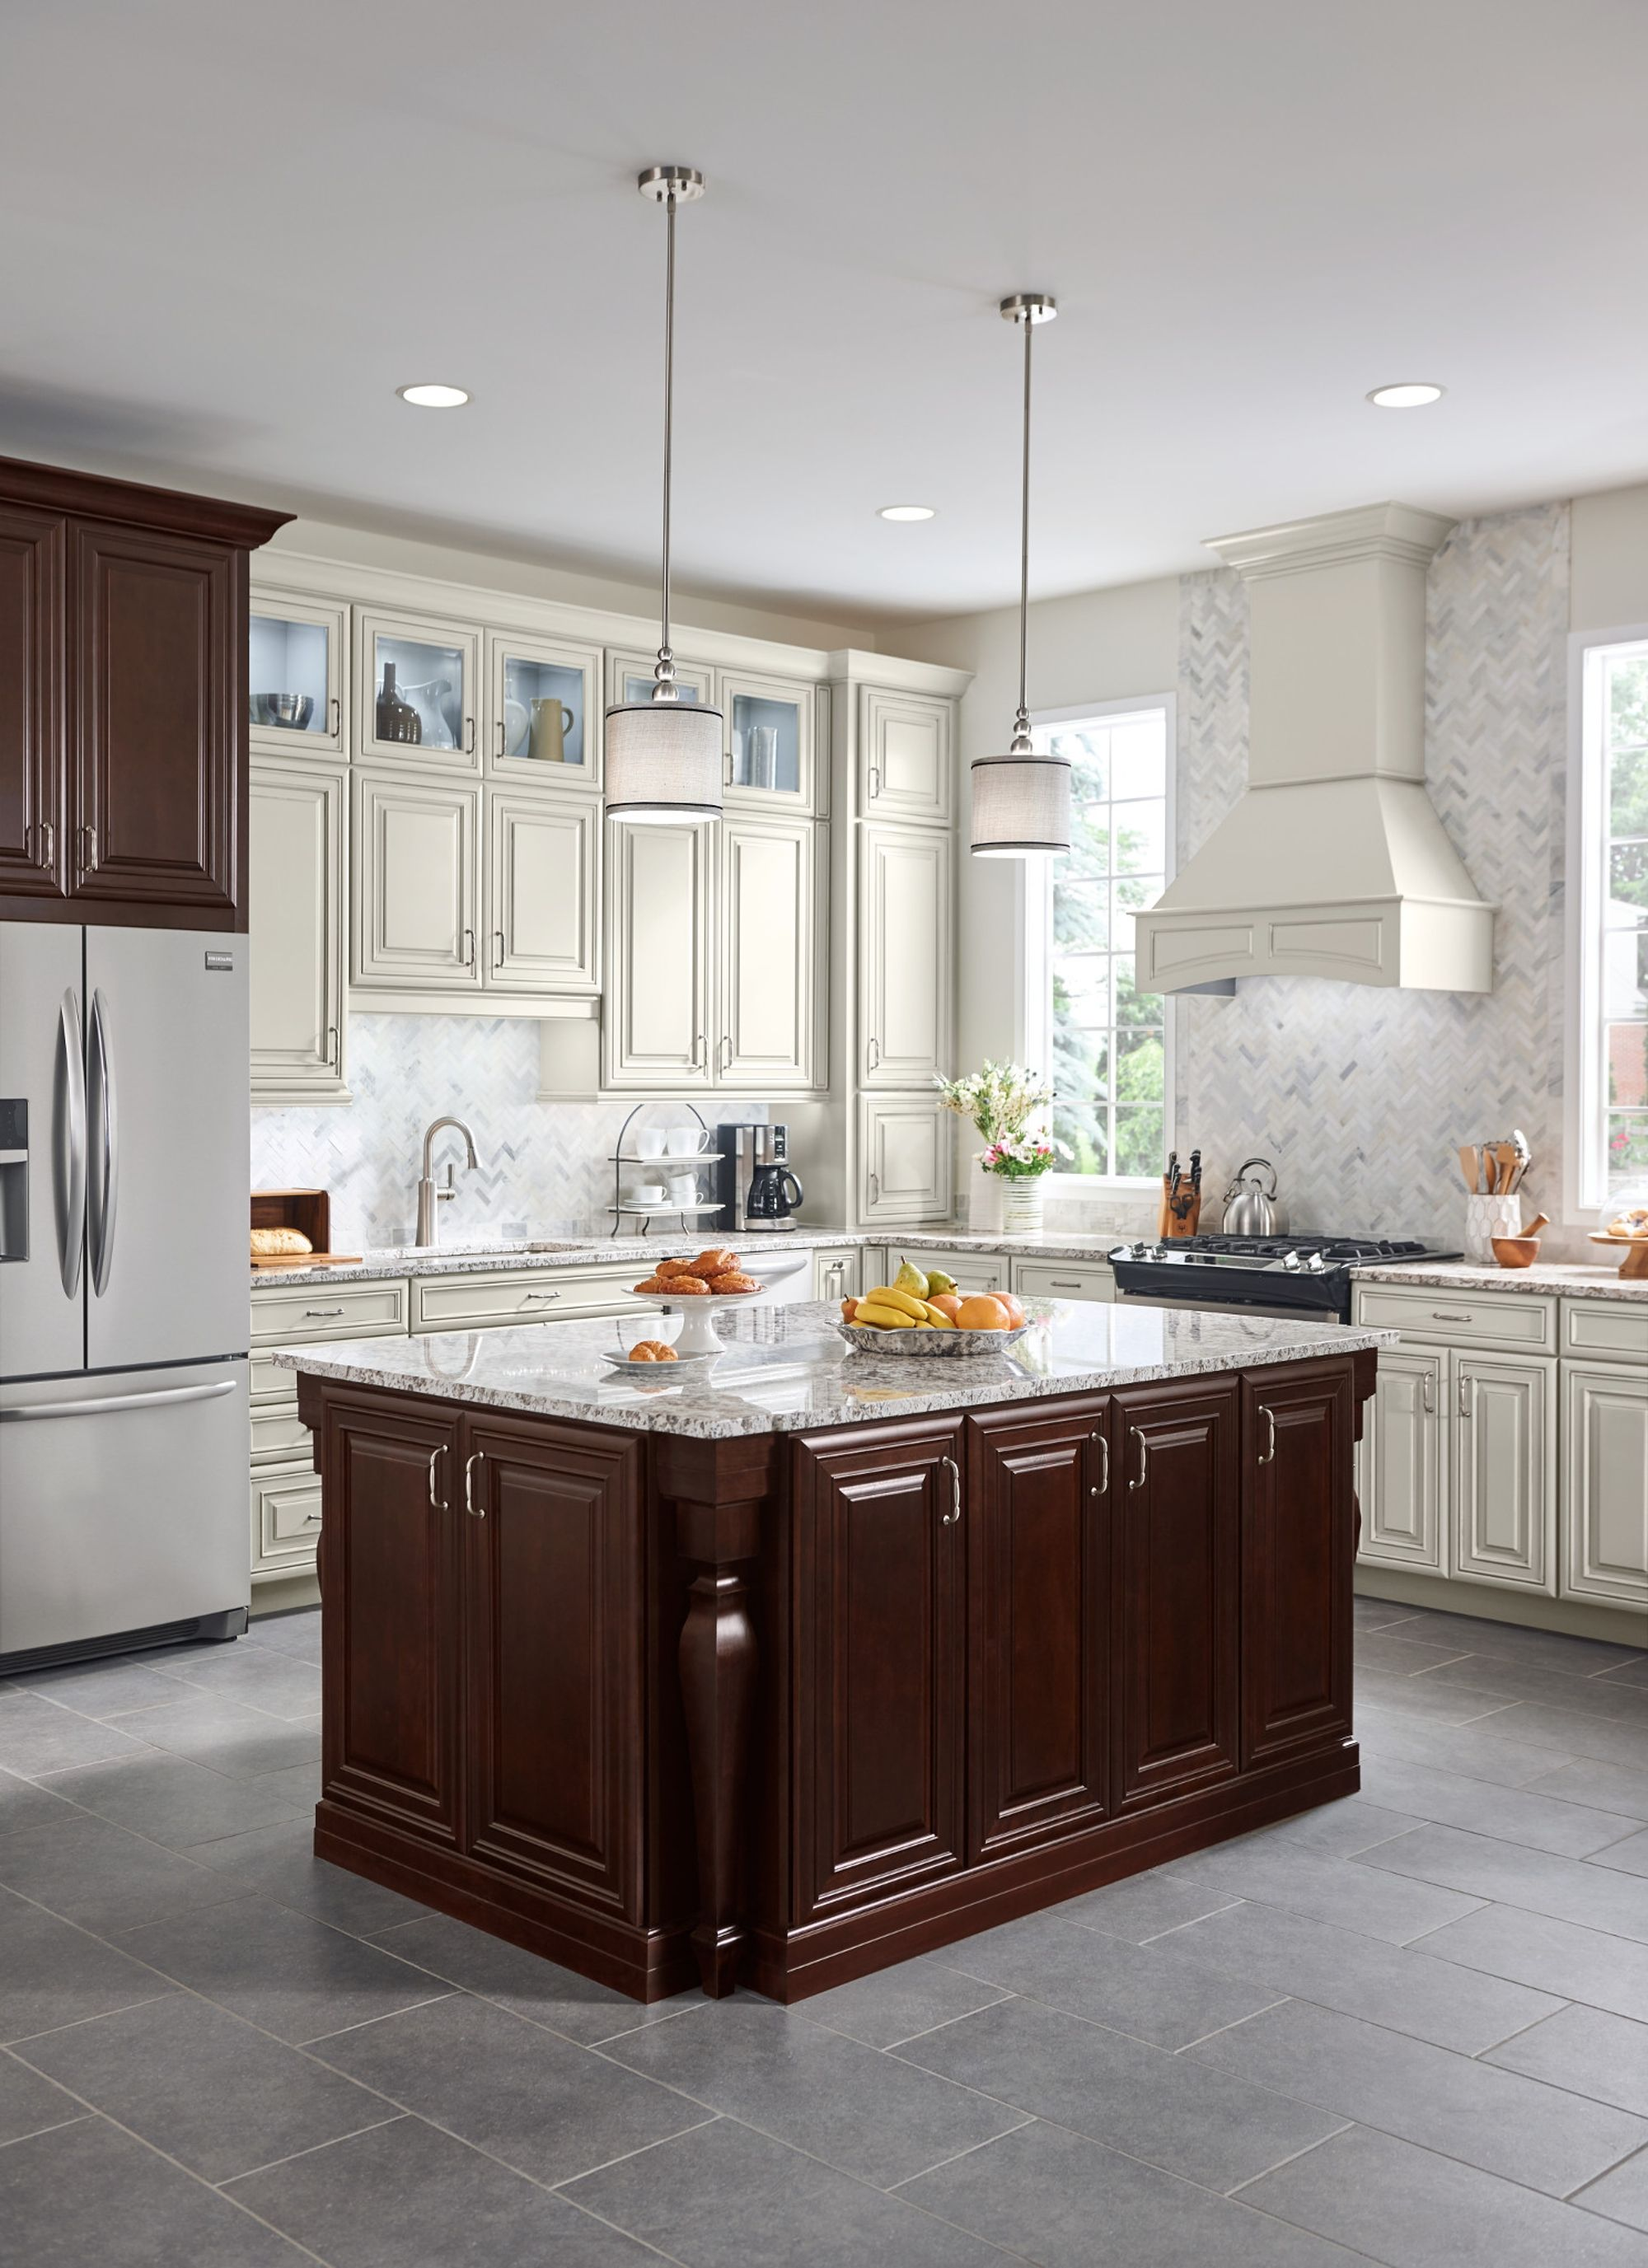 Shenandoah Cabinets Westfall Kitchen Remodel Kitchen Cabinet Design Beautiful Kitchen Cabinets